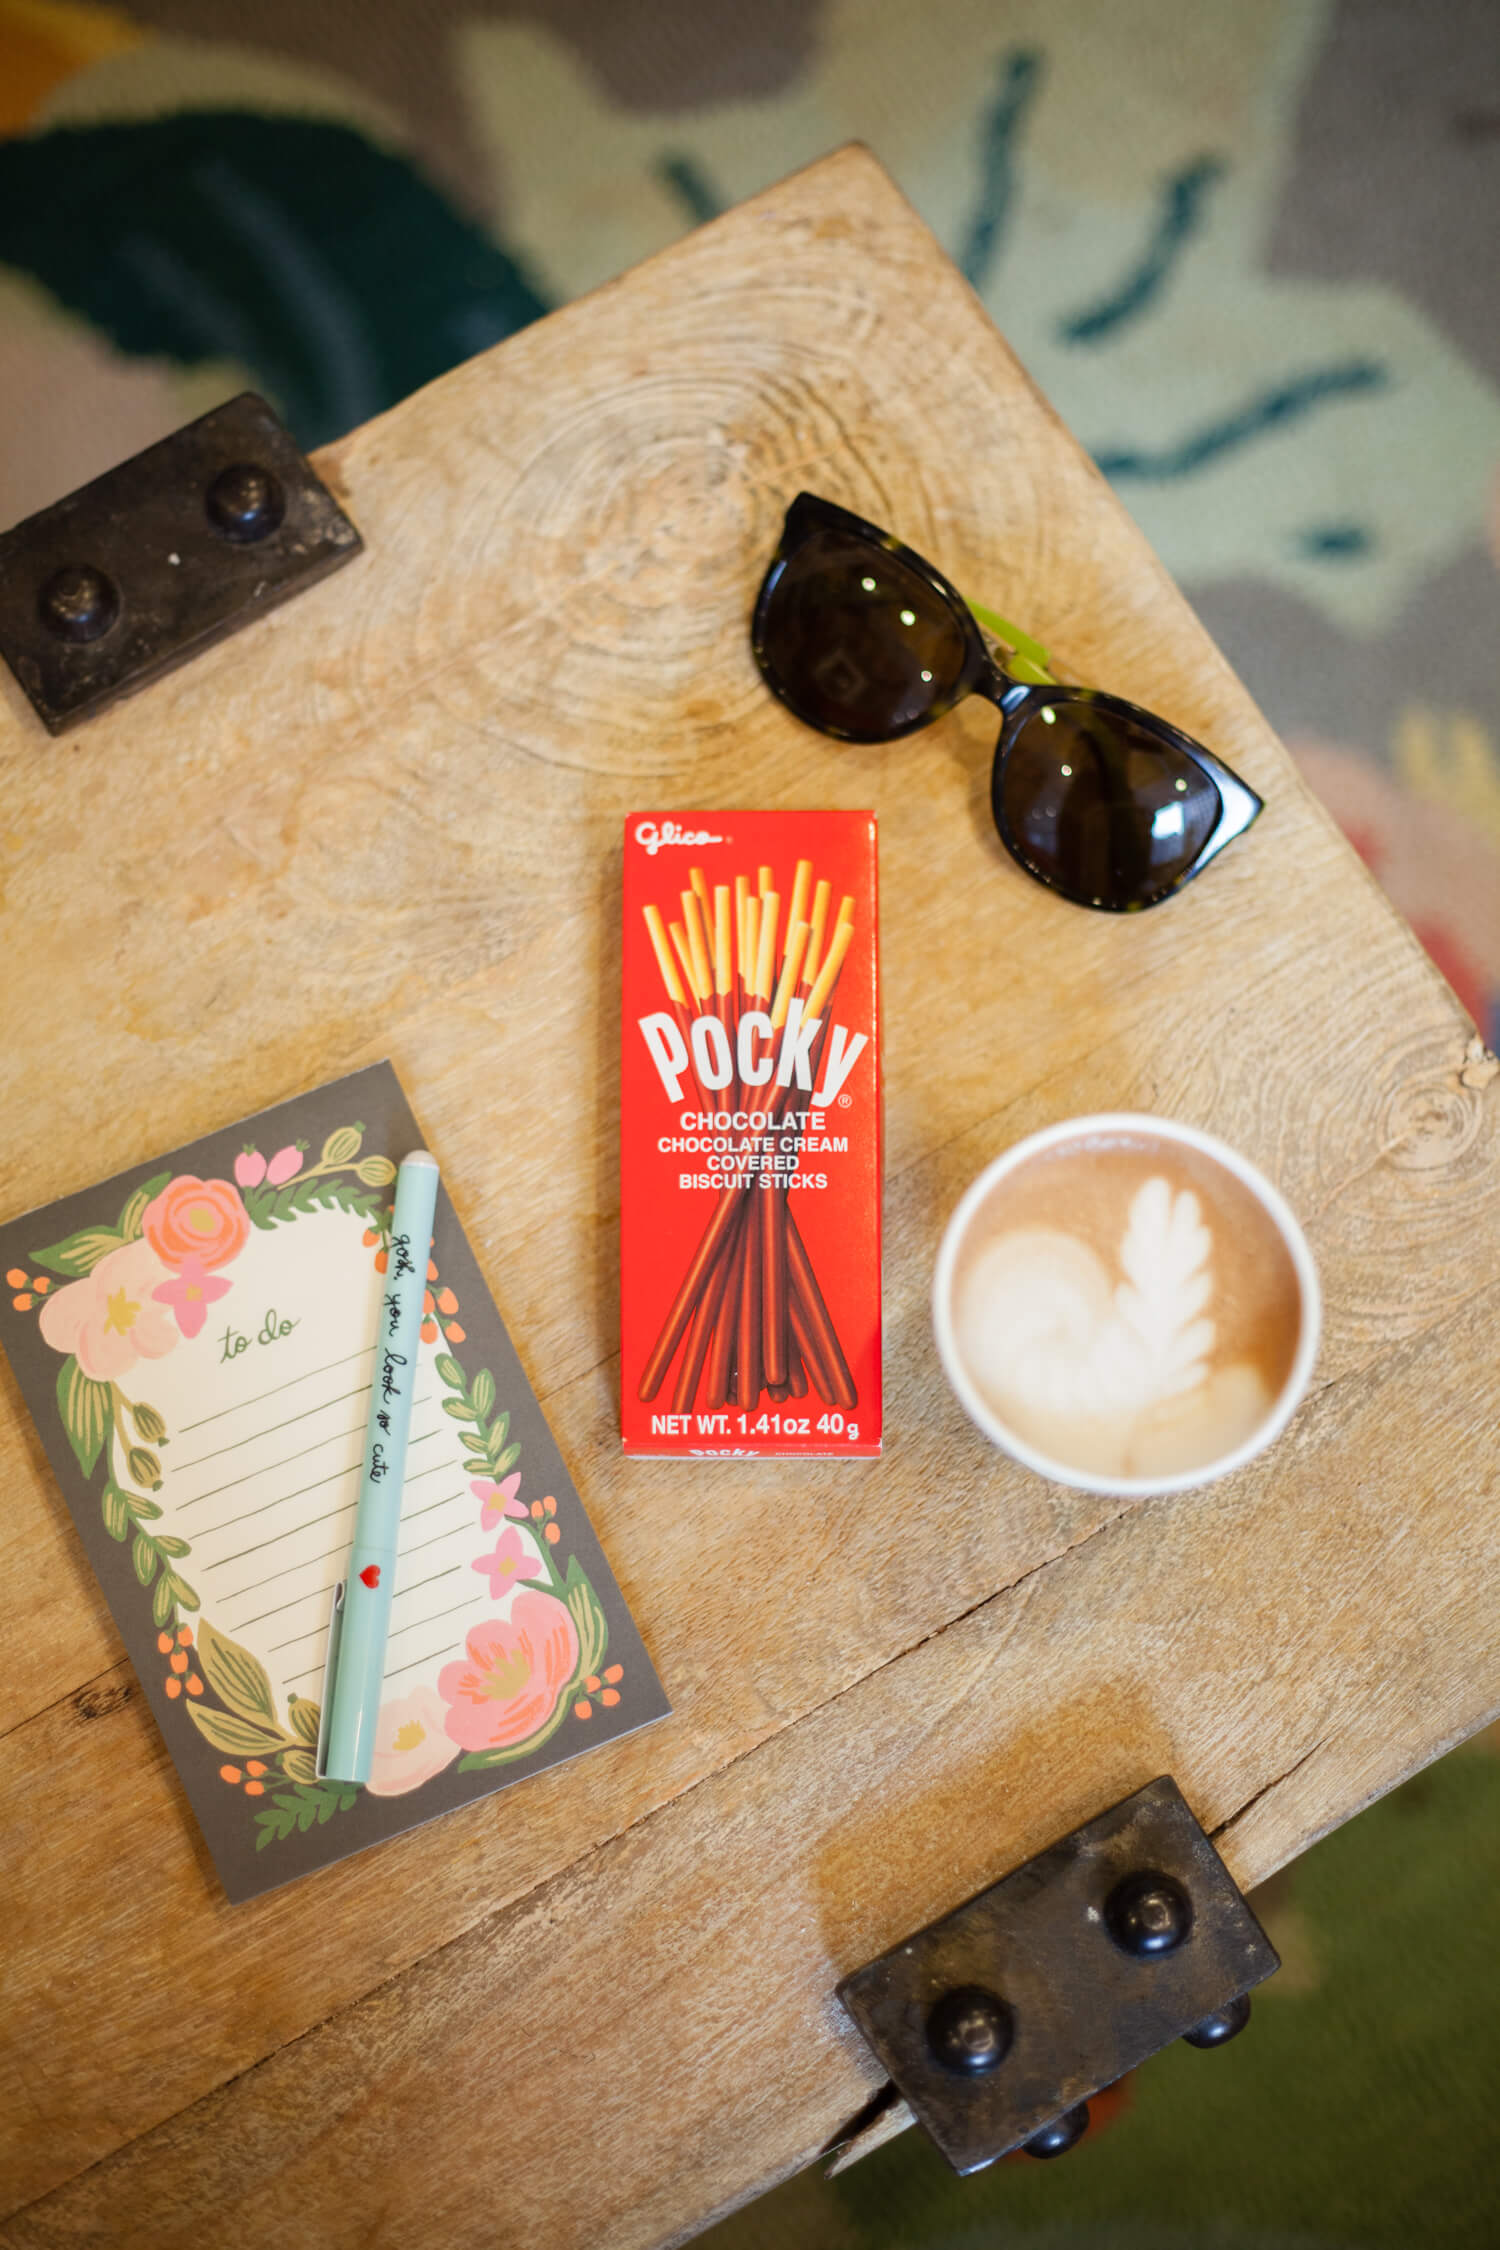 Pocky and Coffee Pairing Idea - Chocolate and a hot mocha.